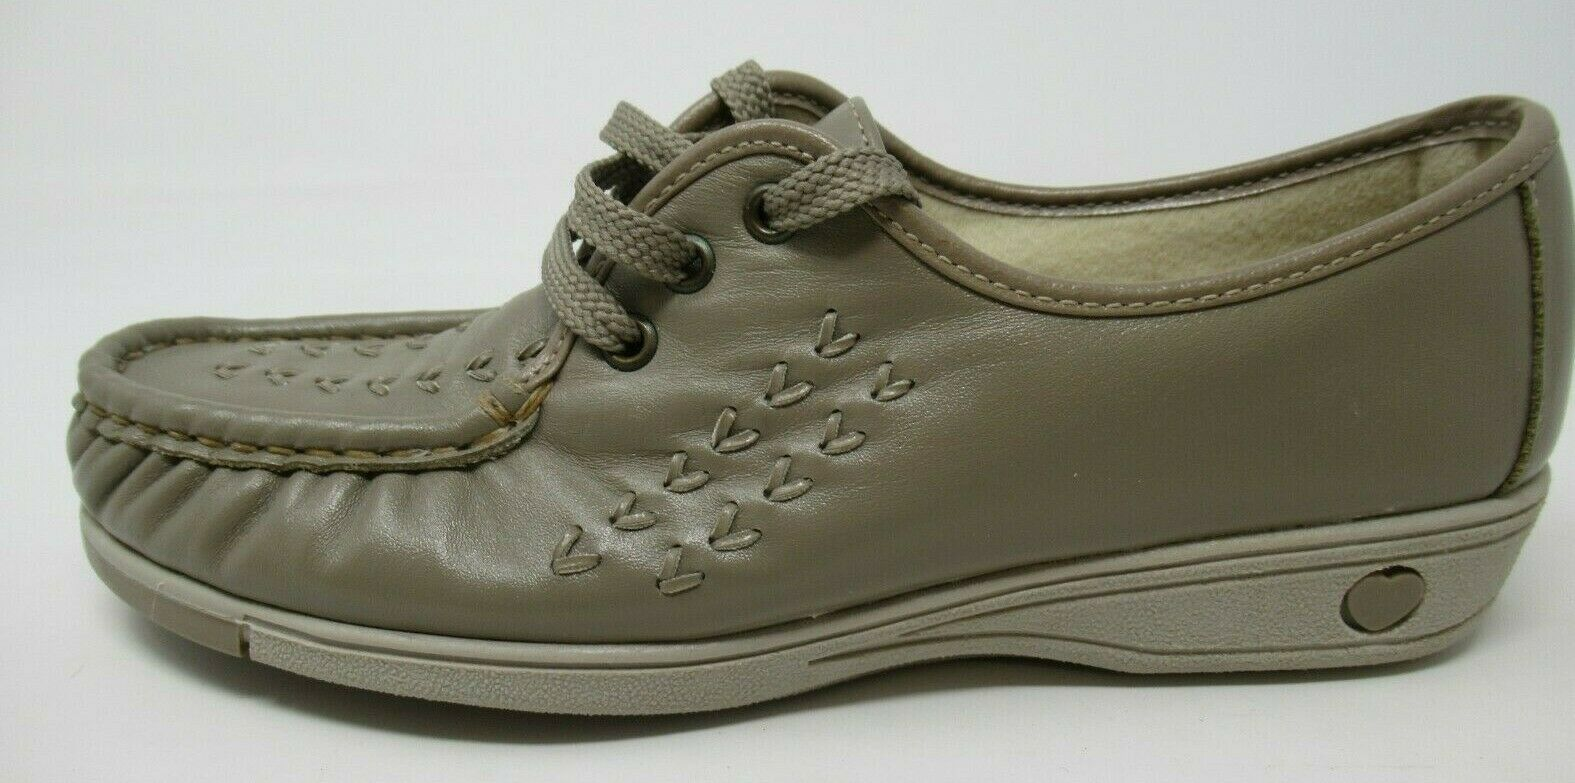 SOFTSPOTS WOMEN'S ORIG. BONNIE TAUPE GREY LEA. LACE-UP CASUAL COMFORT SHOES 7/N